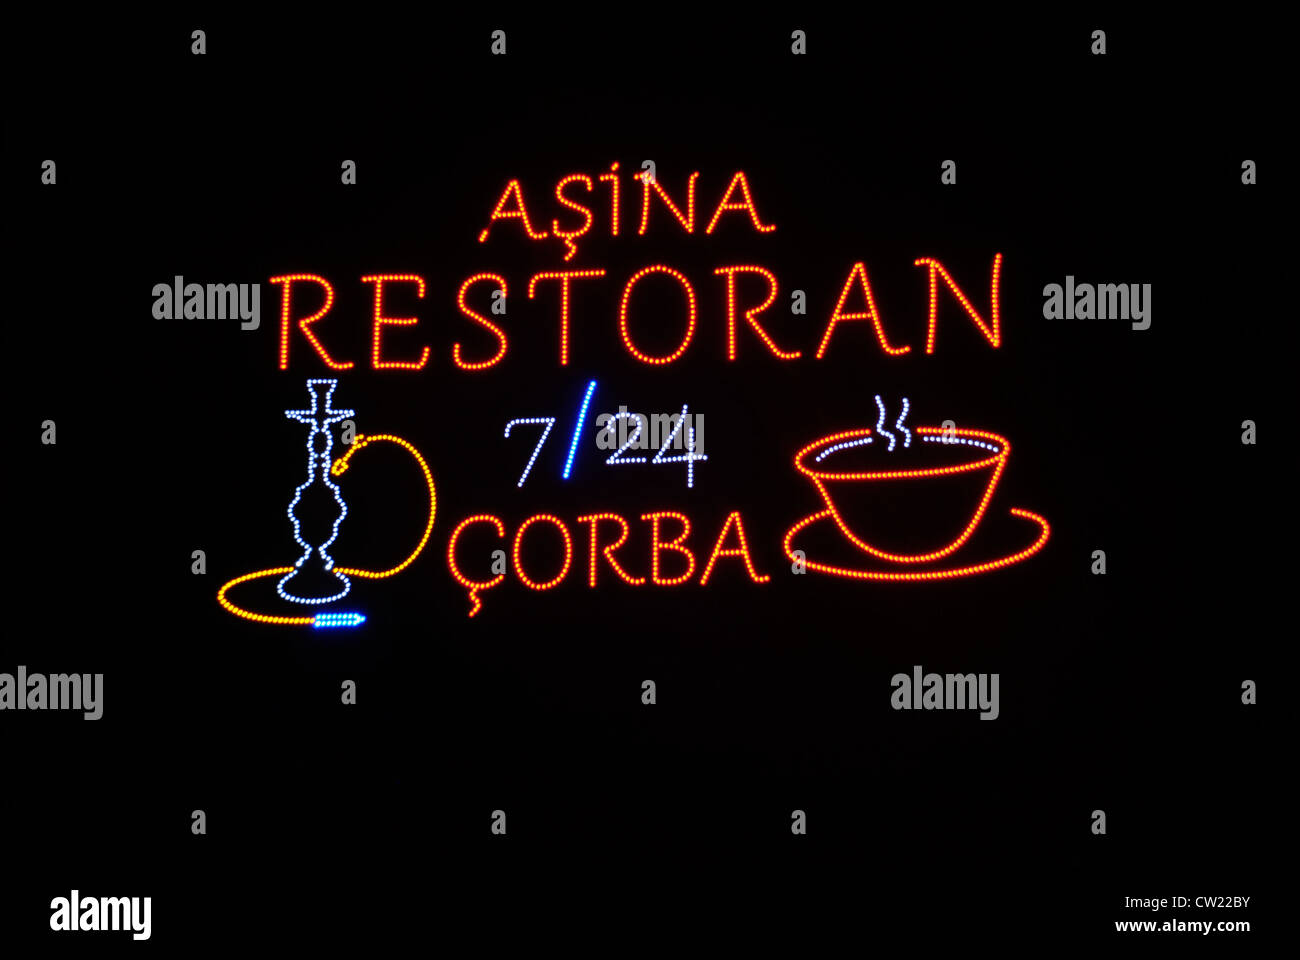 A stylish neon restaurant sign in the Kacimpusa district of Istanbul. Picture by: Adam Alexander/Alamy - Stock Image